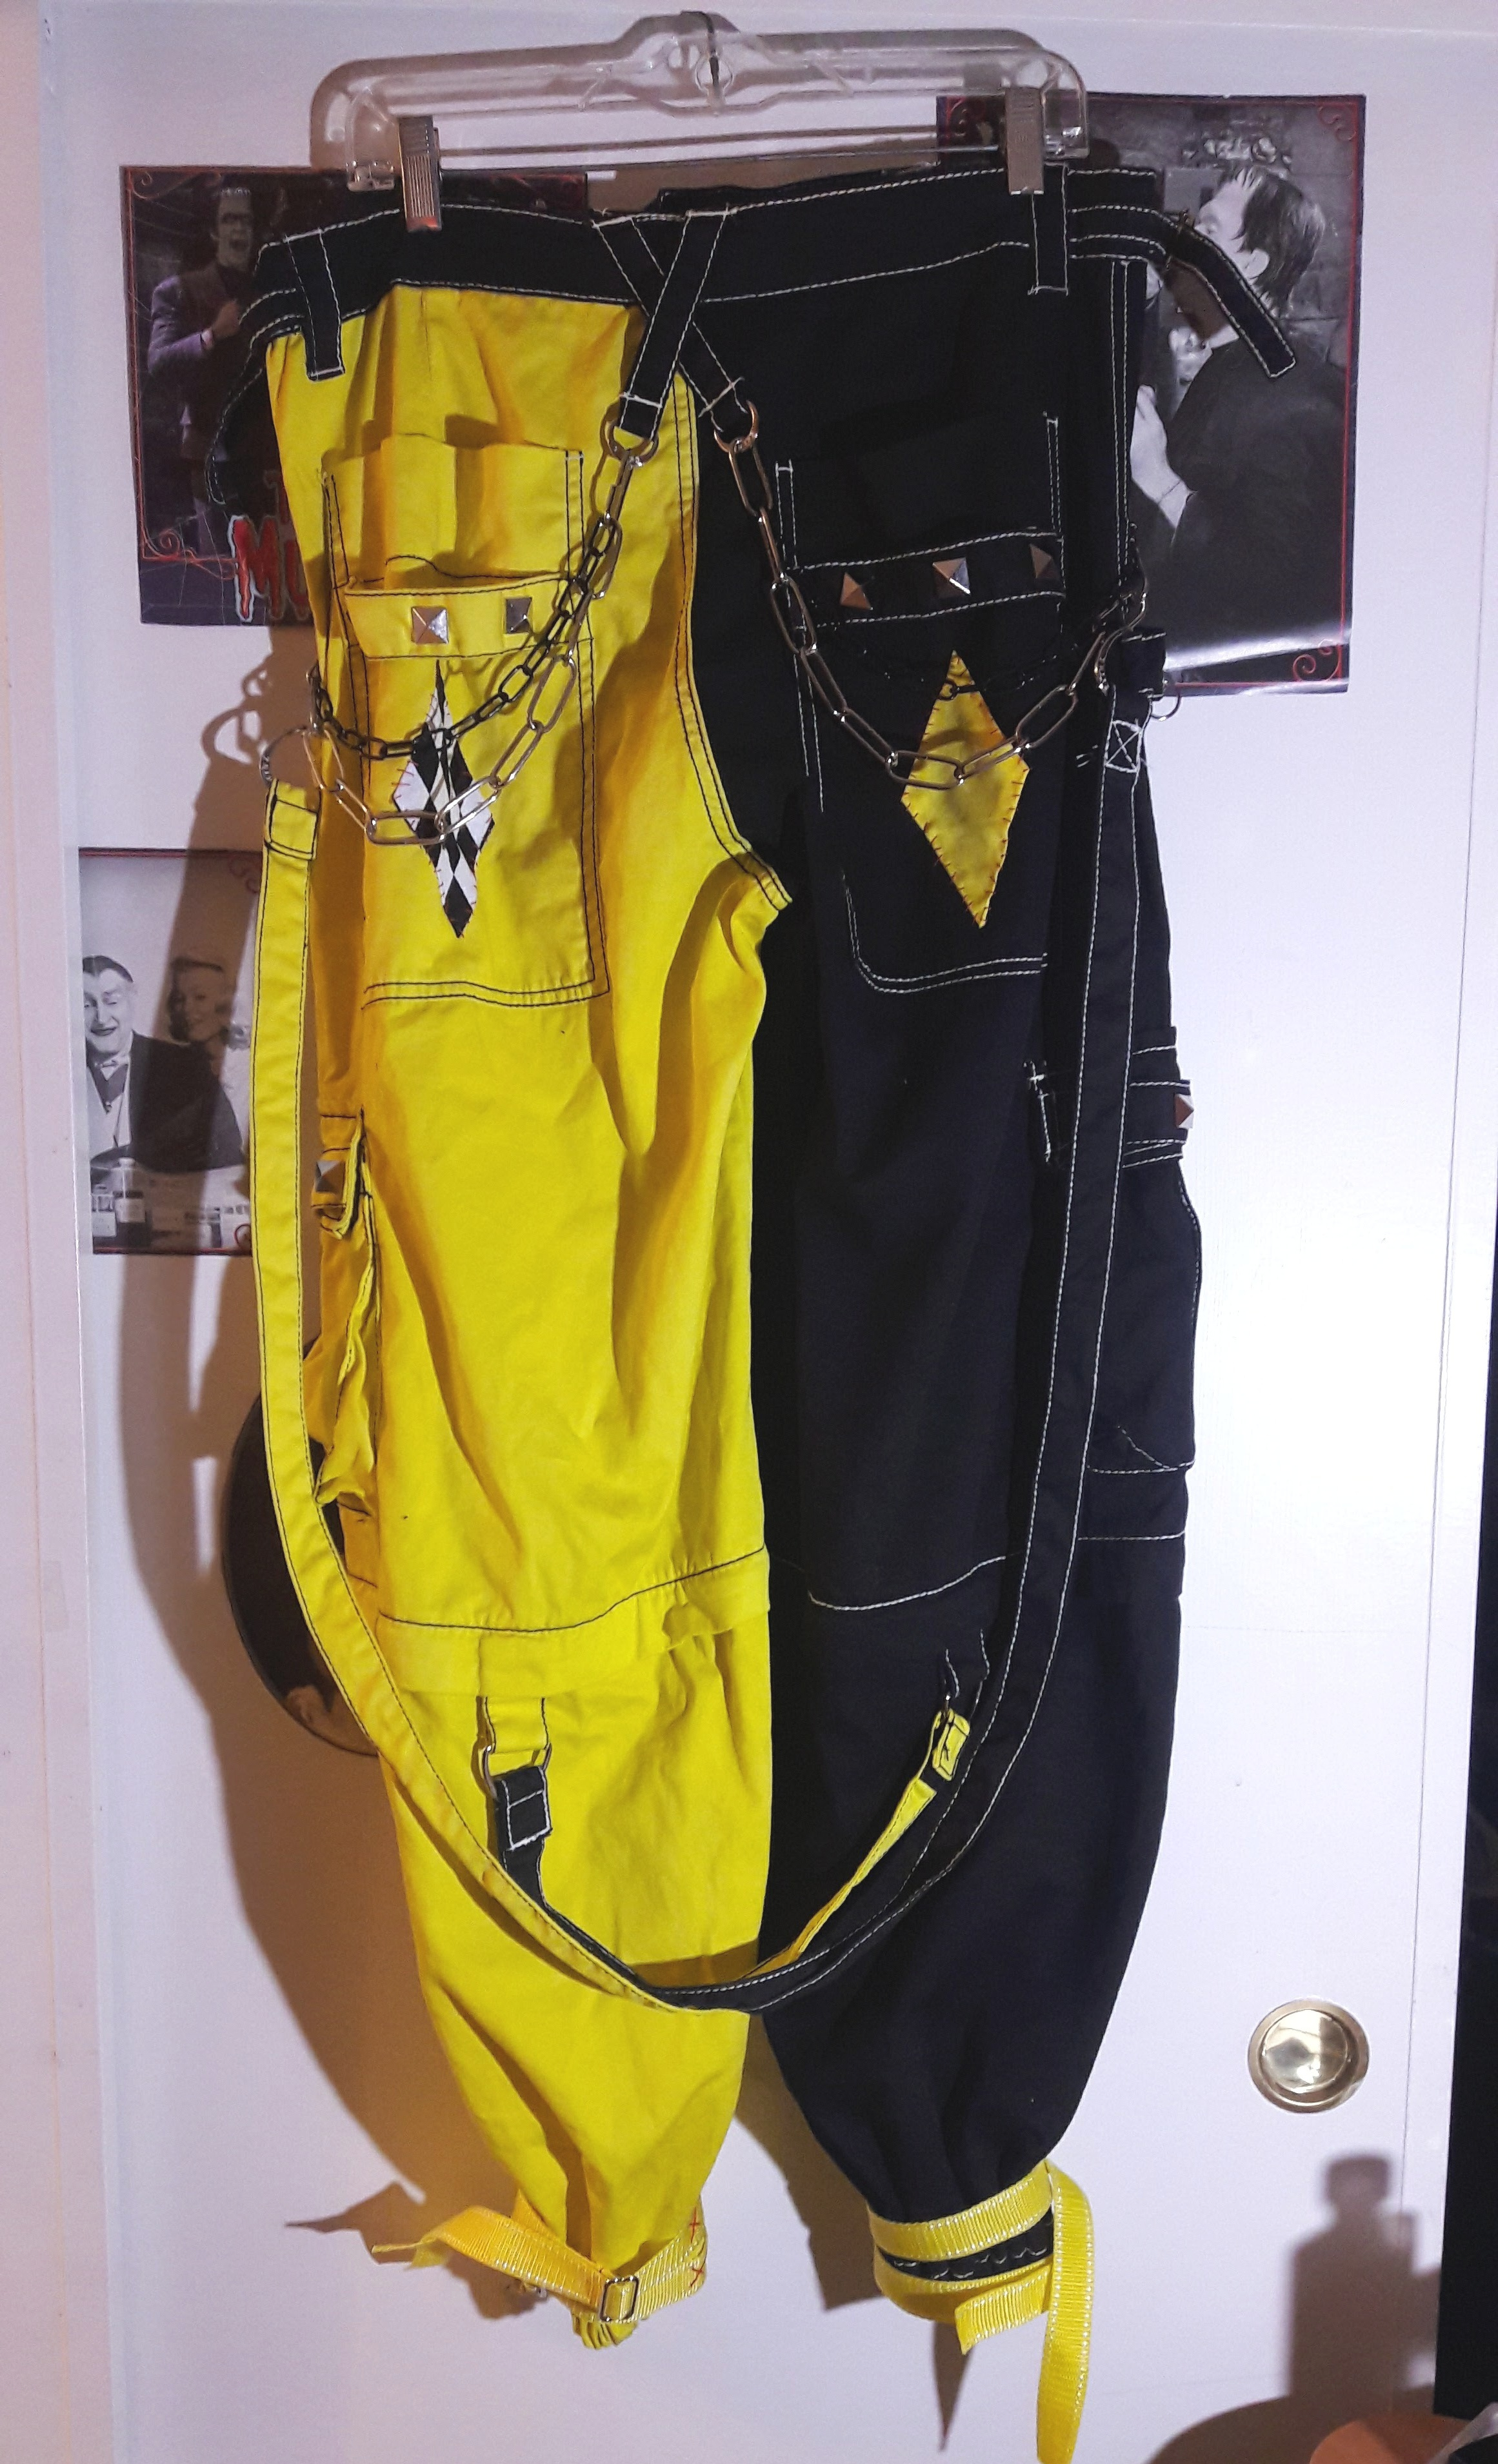 Tweak- Fright Fest, 2016  Piece commissioned by Cole Potter  Trip pants purchased and customized: Dyed yellow, elastic added to hem, straps , chains, studs, & patches added.